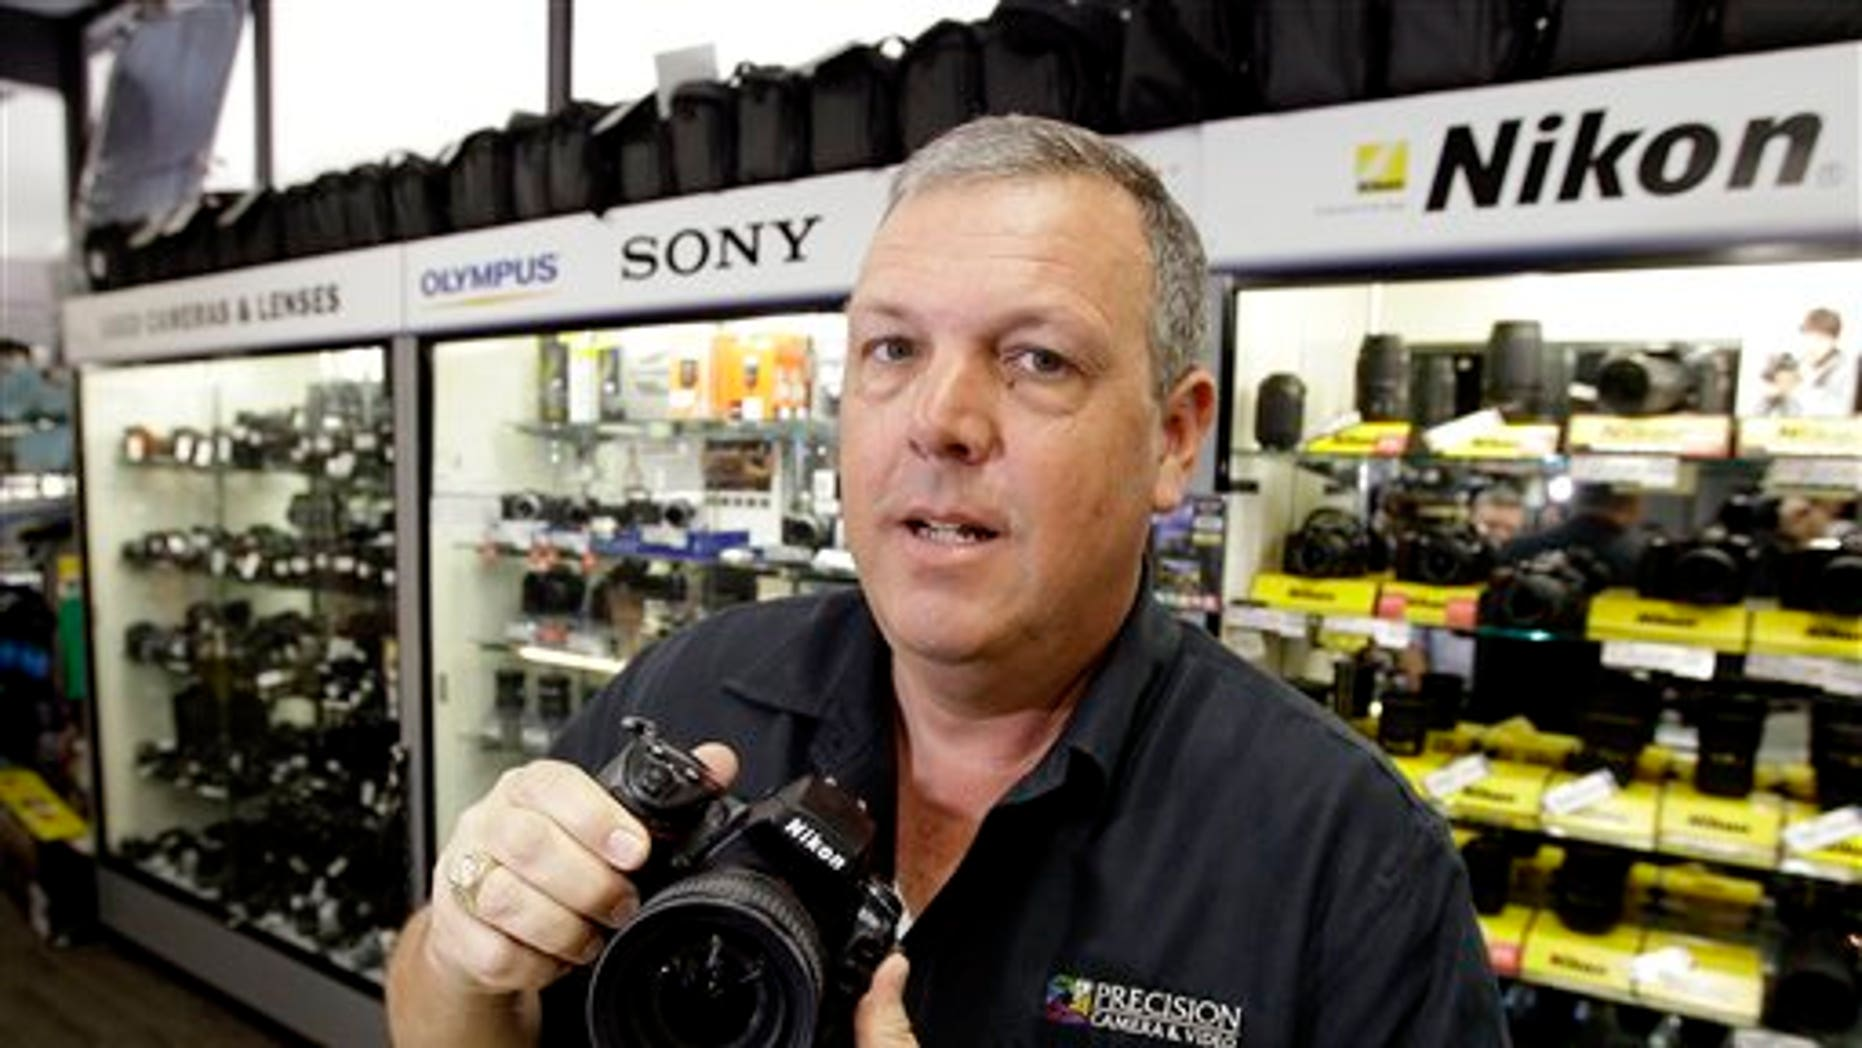 In this April 21, 2011 photo, Gregg Burger, general manager of Precision Camera, an independent retailer, poses for a photo at his store, in Austin, Texas. Burger has lobbied for legislation that would require out-of-state Internet retailers to collect Texas sales tax, creating what he calls a level playing field for local retailers.